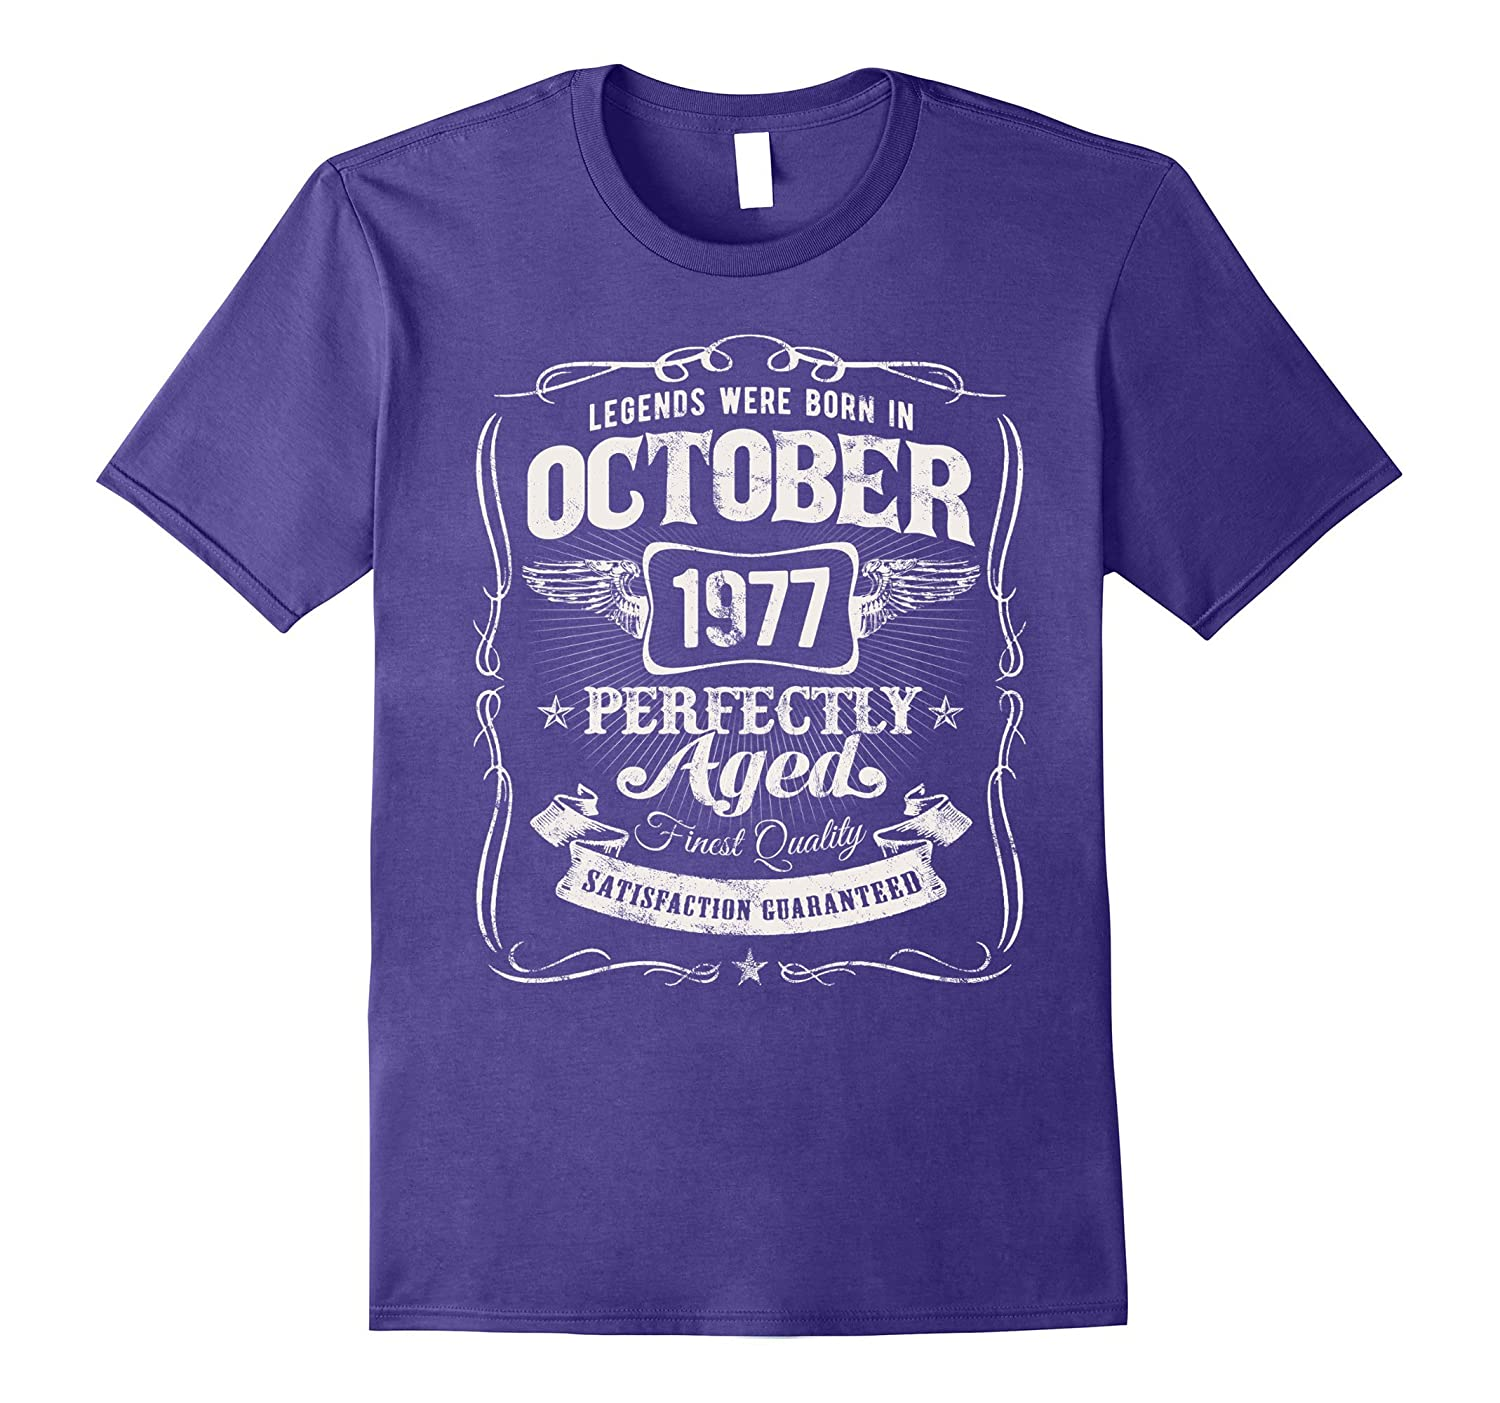 Legends Were Born In October 1977 Shirt 40th Birthday Gift-T-Shirt